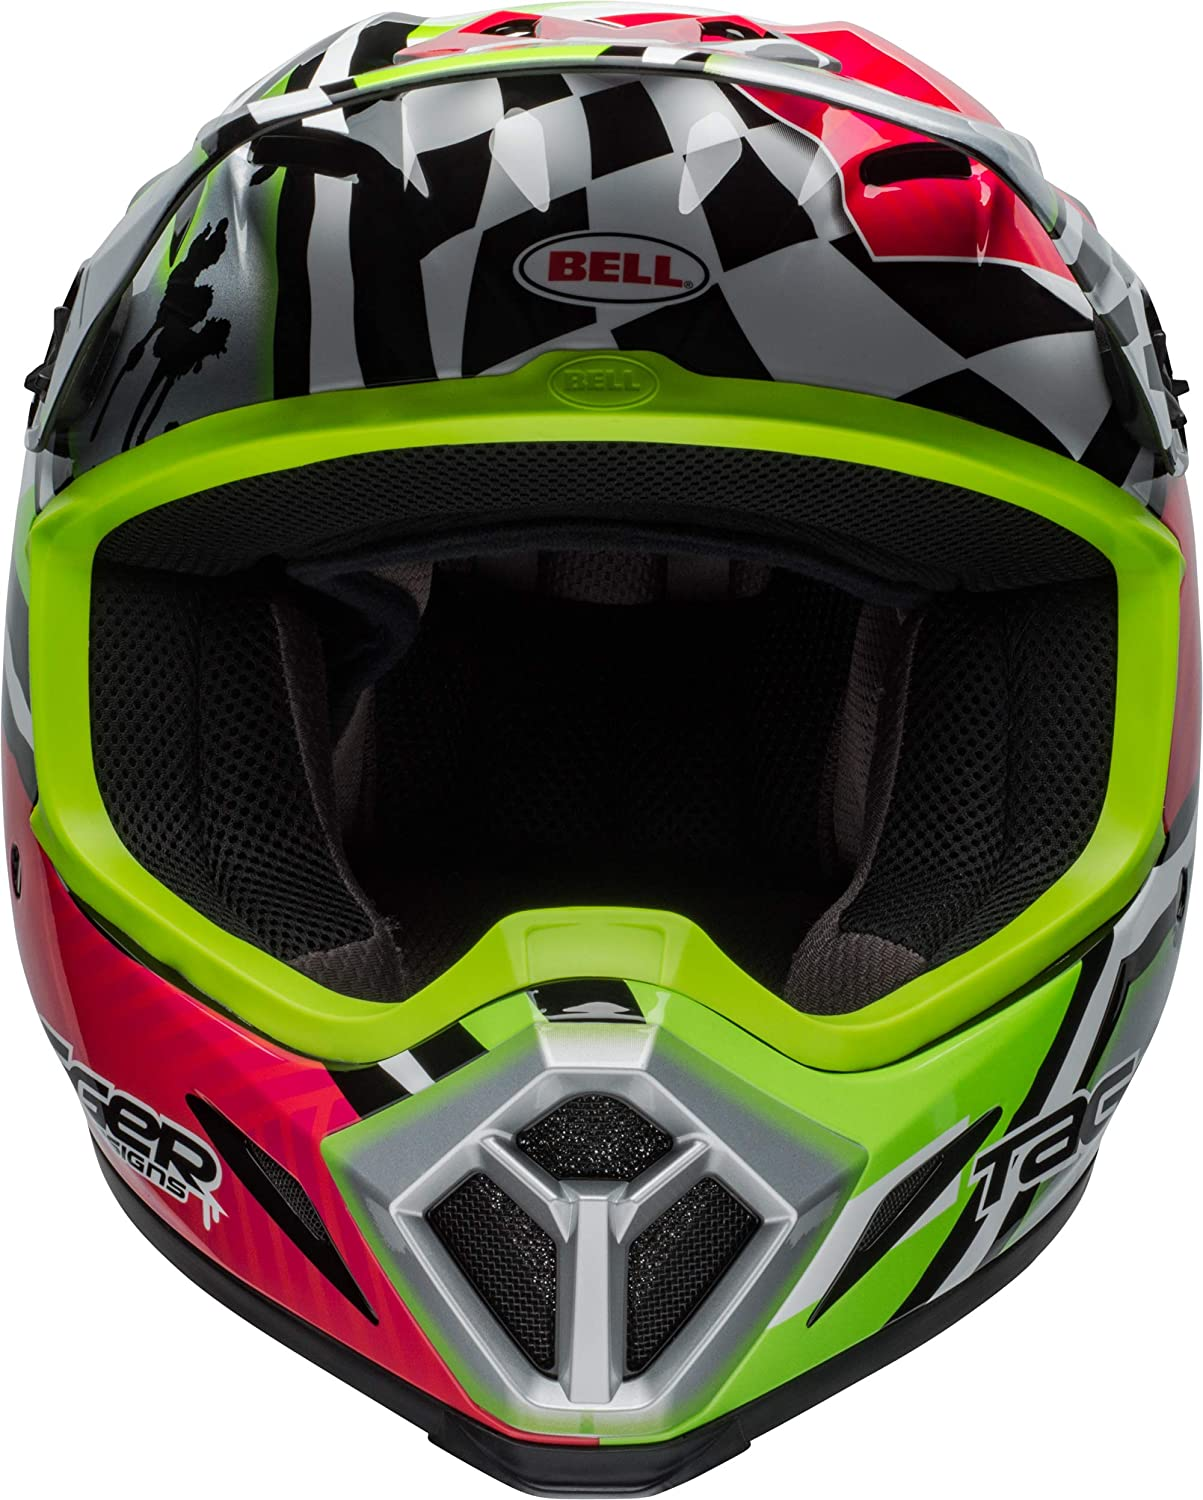 Bell MX-9 MIPS Off-Road Motorcycle Helmet Tagger Asymmetric Gloss Pink//Green, X-Large